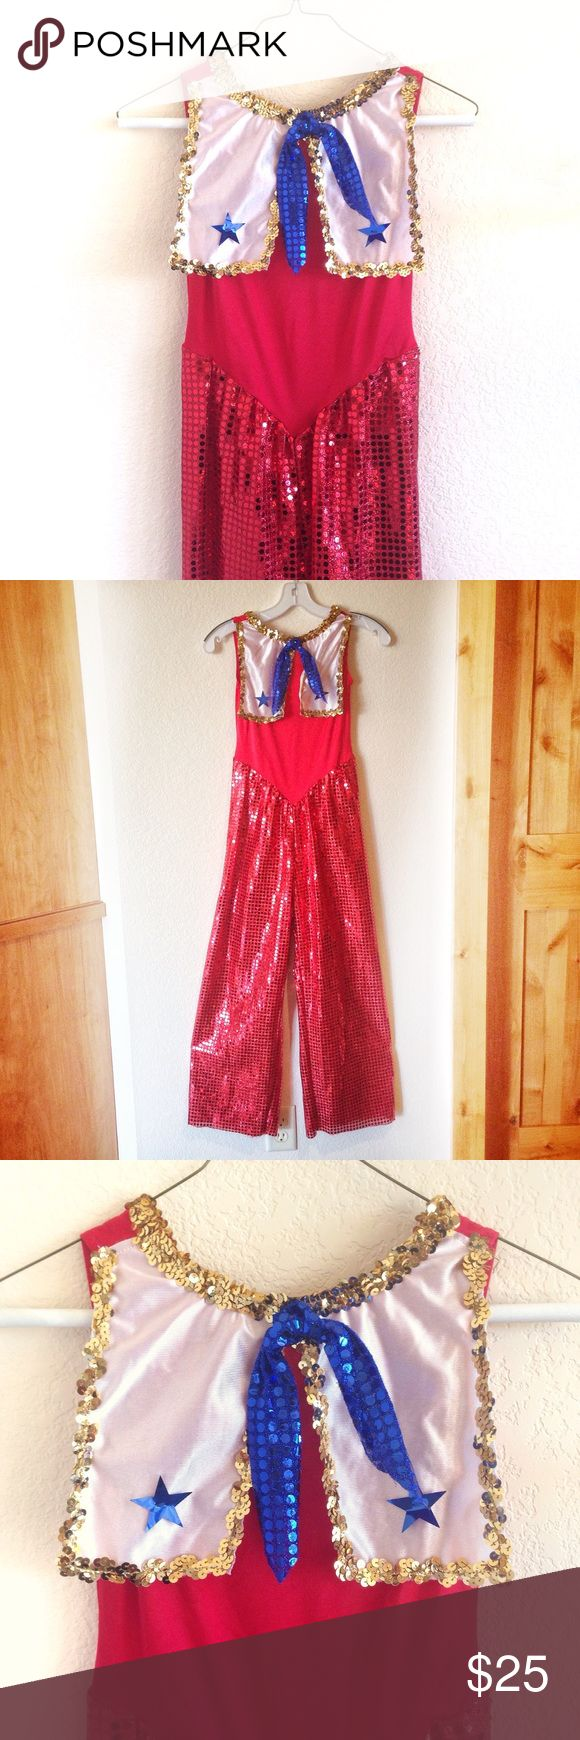 ✨Vintage✨Sequin Sailor Costume! Halloween is near! This is how you win the party. Sequins & stars! This amazing find is in mint condition. Sexy (but not too sexy) sailor, anyone? Make me an offer - it's Halloween, after all 😎✨🌈 Vintage Pants Jumpsuits & Rompers